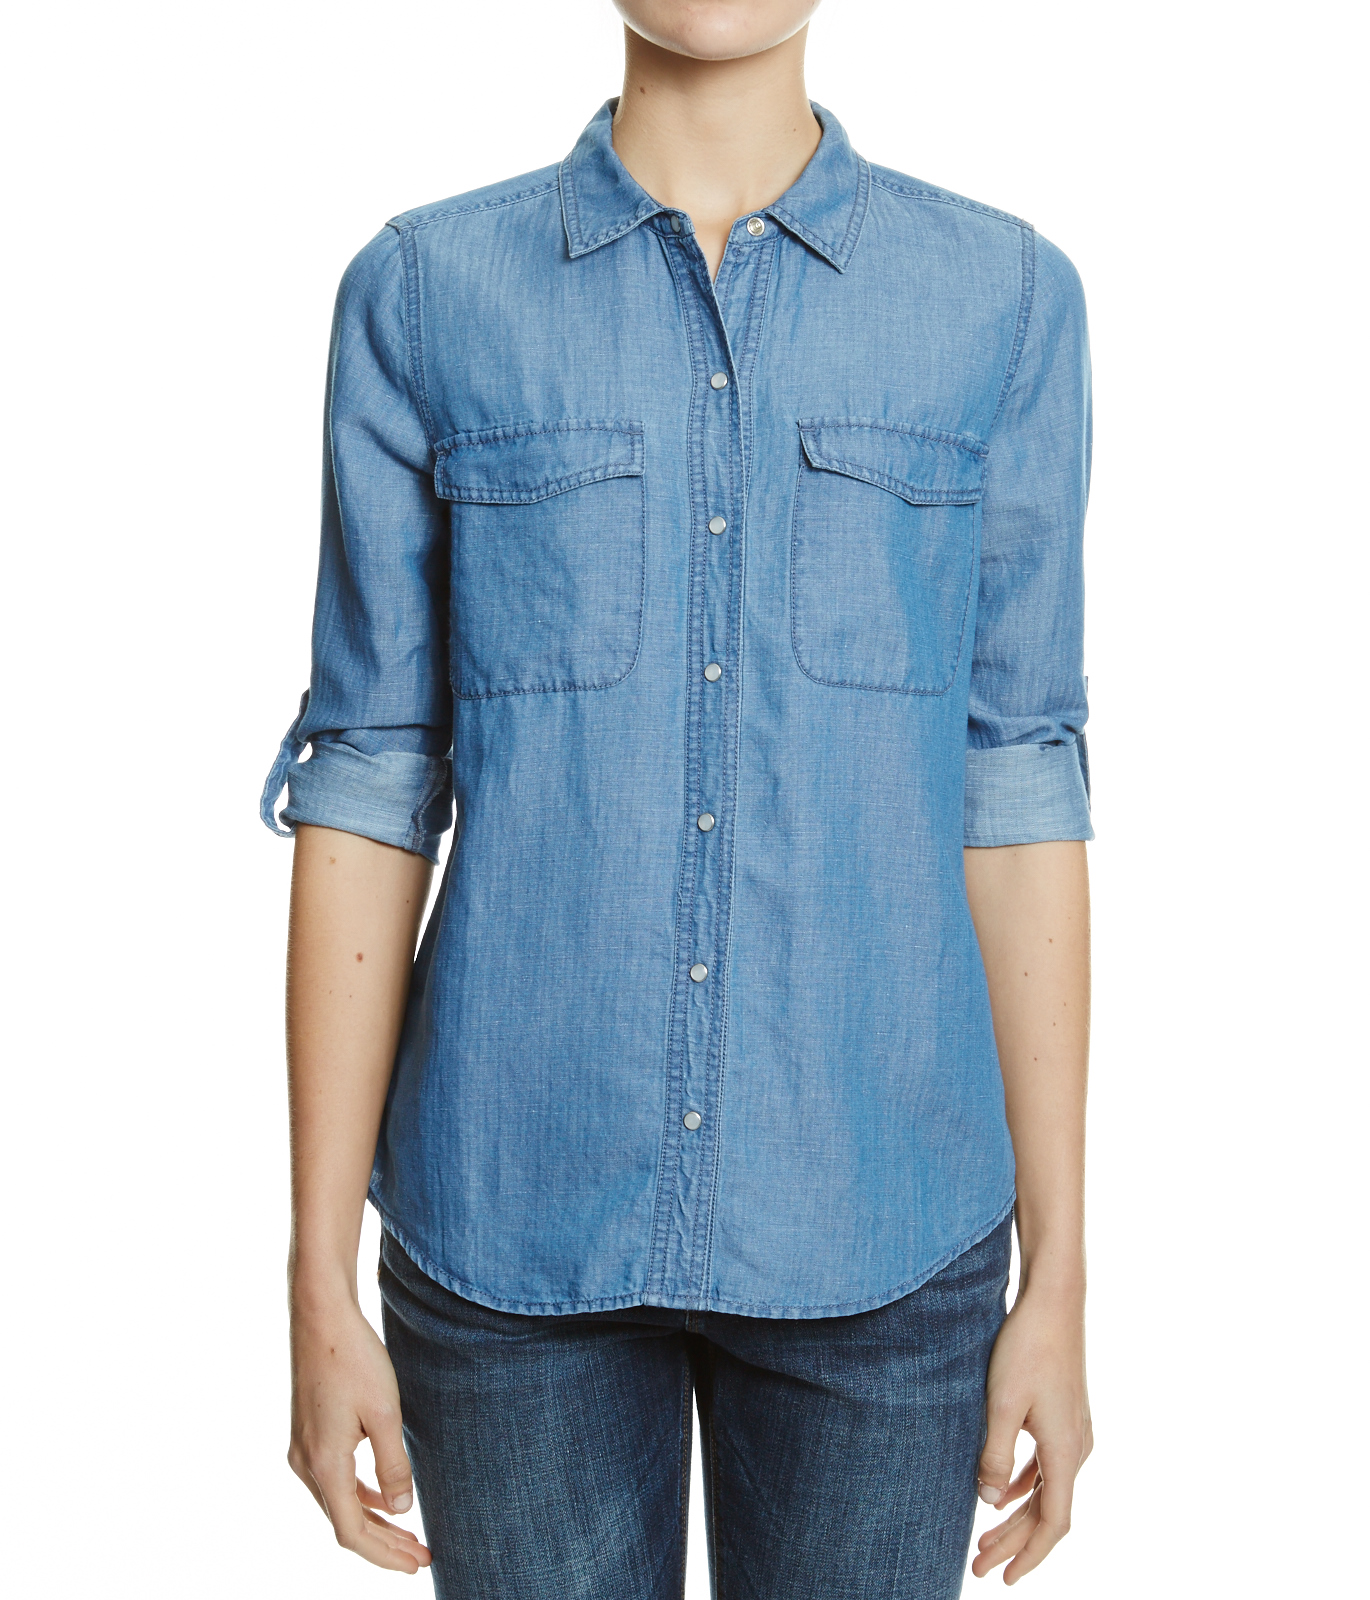 Denim Shirt - Denim On Denim - JAG Online Clothing